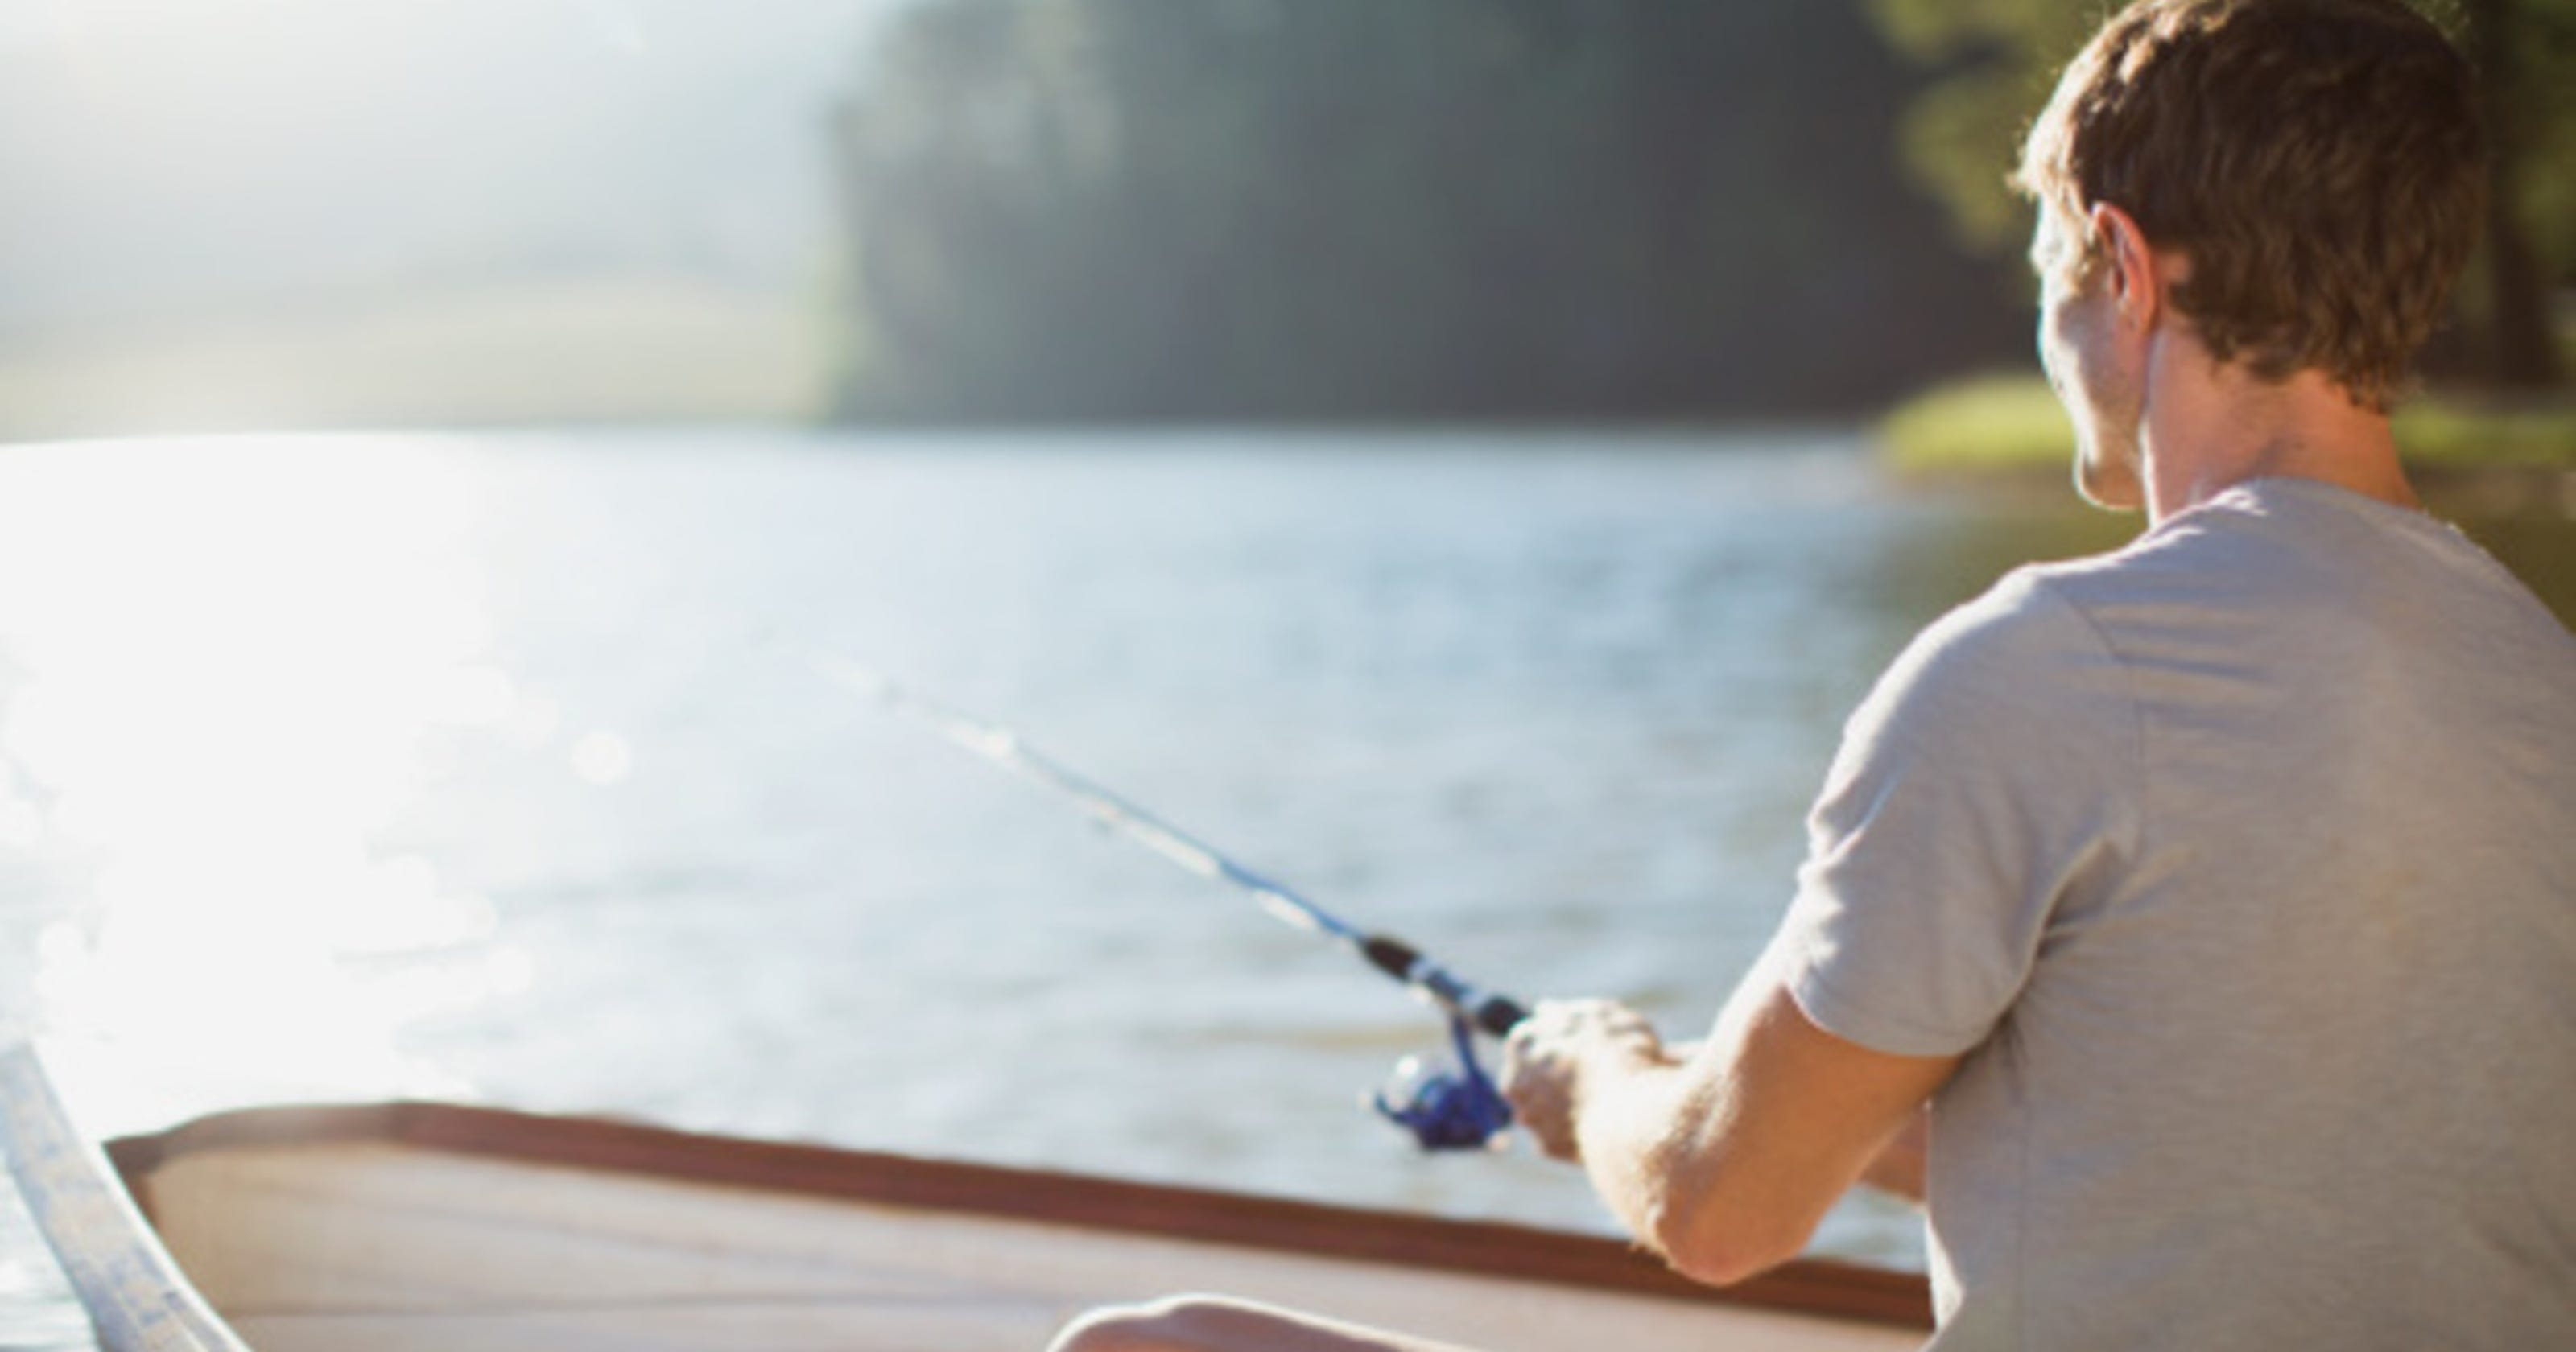 Homer: Give crappie fishing a try this spring